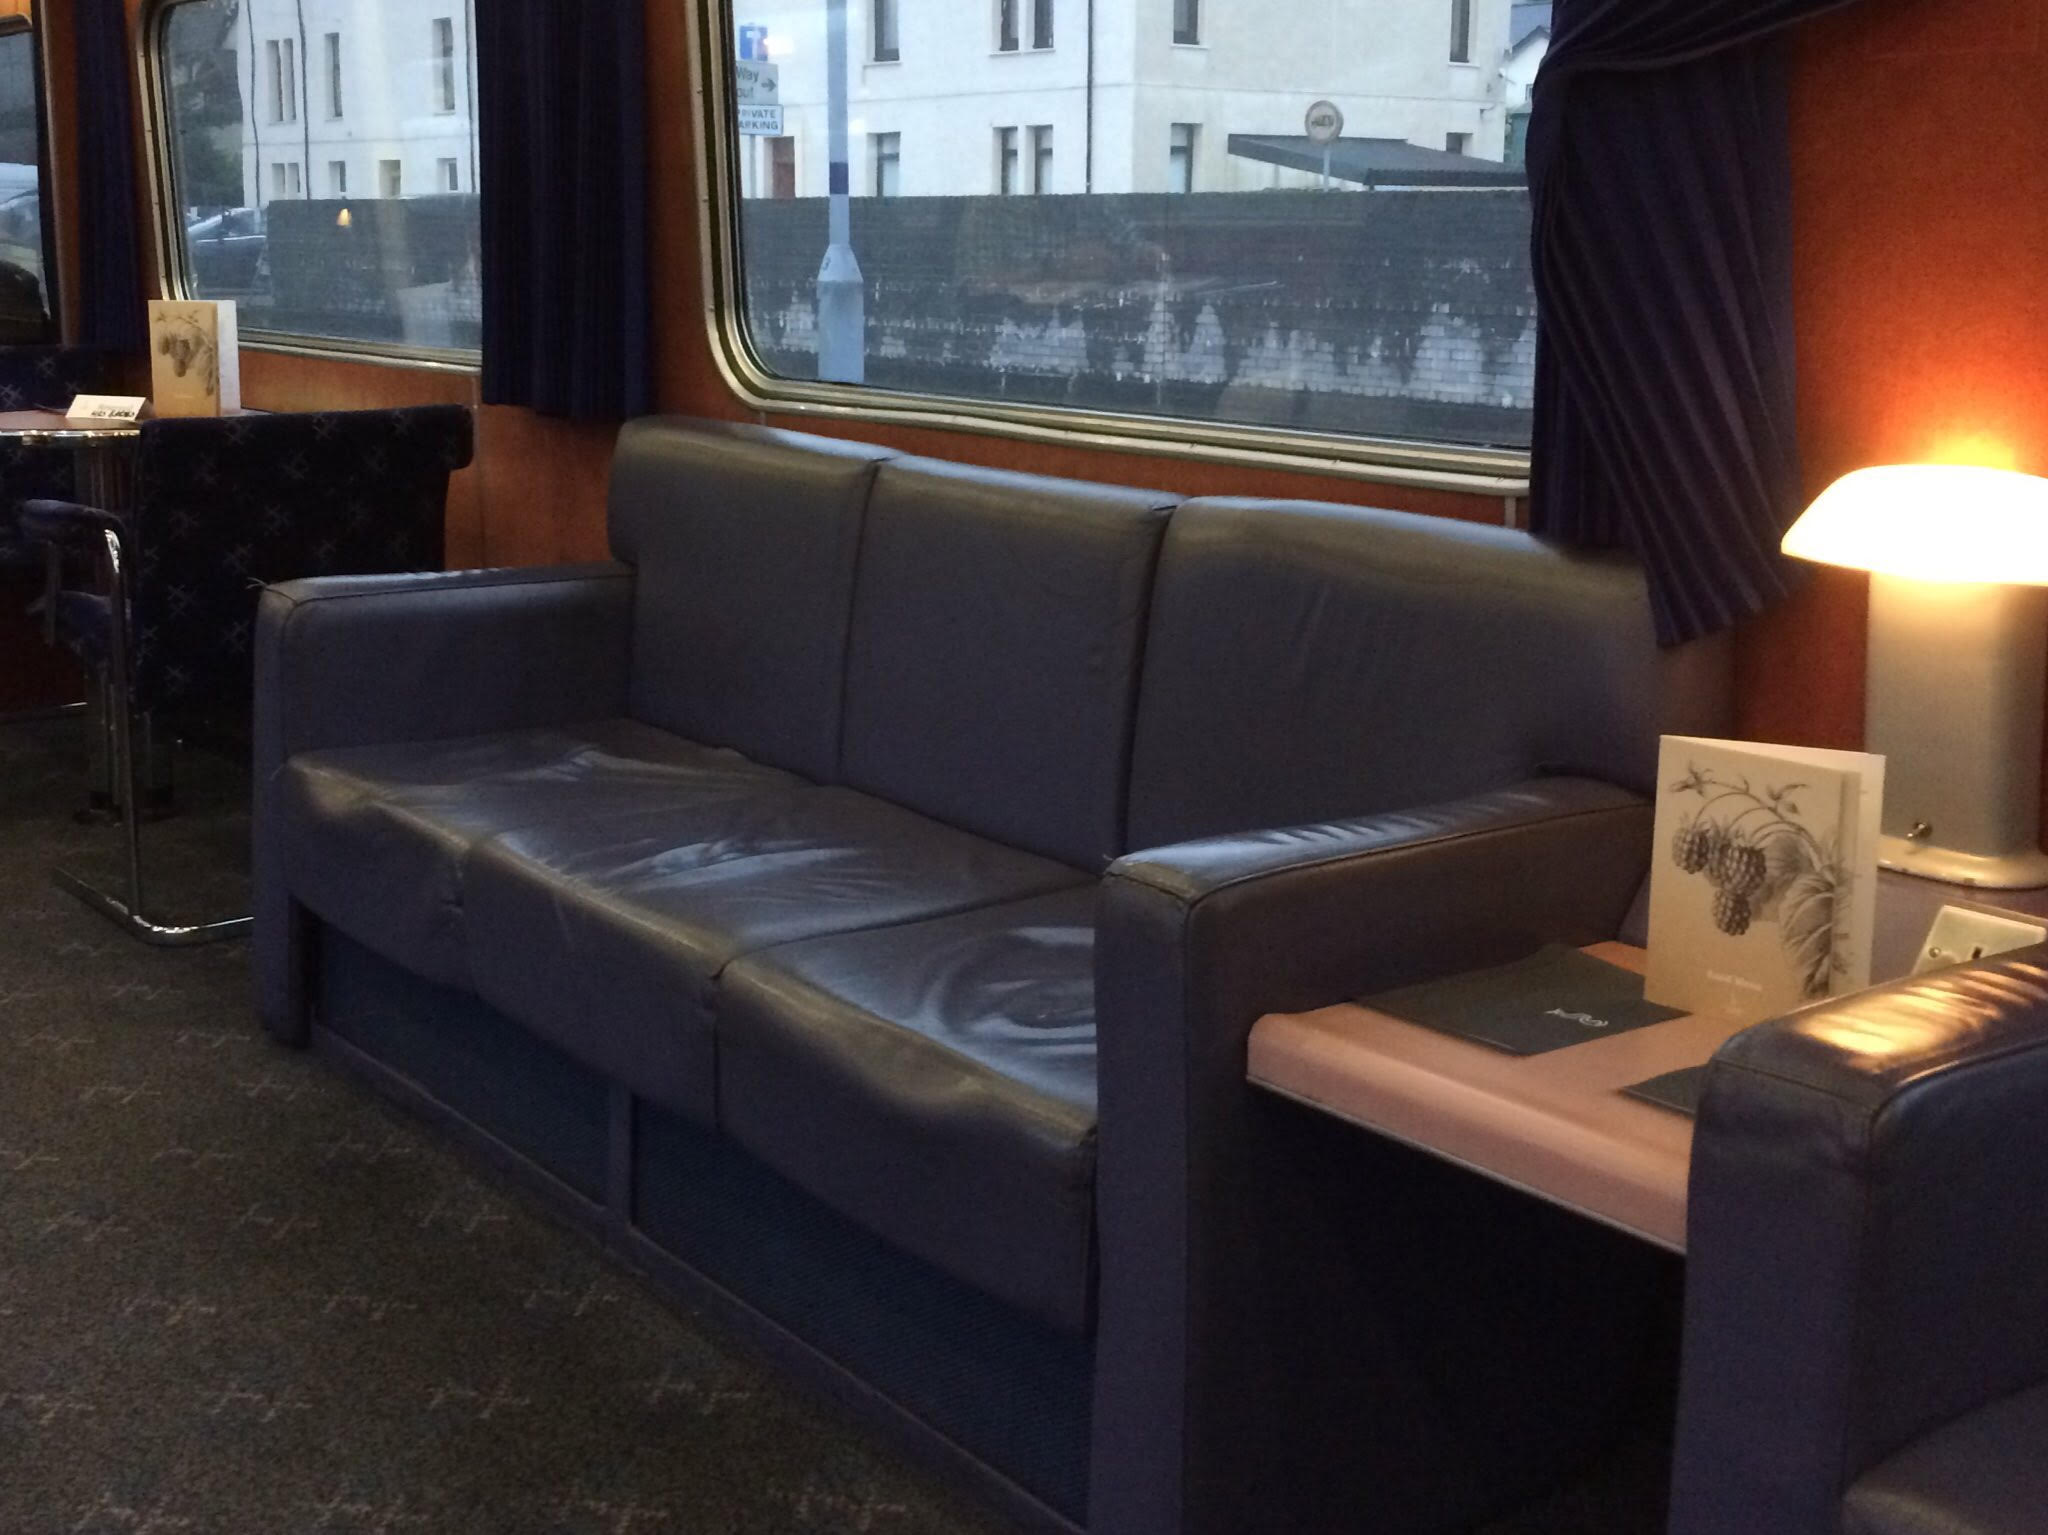 Loungebanken in het restaurant van de Caledonian Sleeper ©Noord West Express